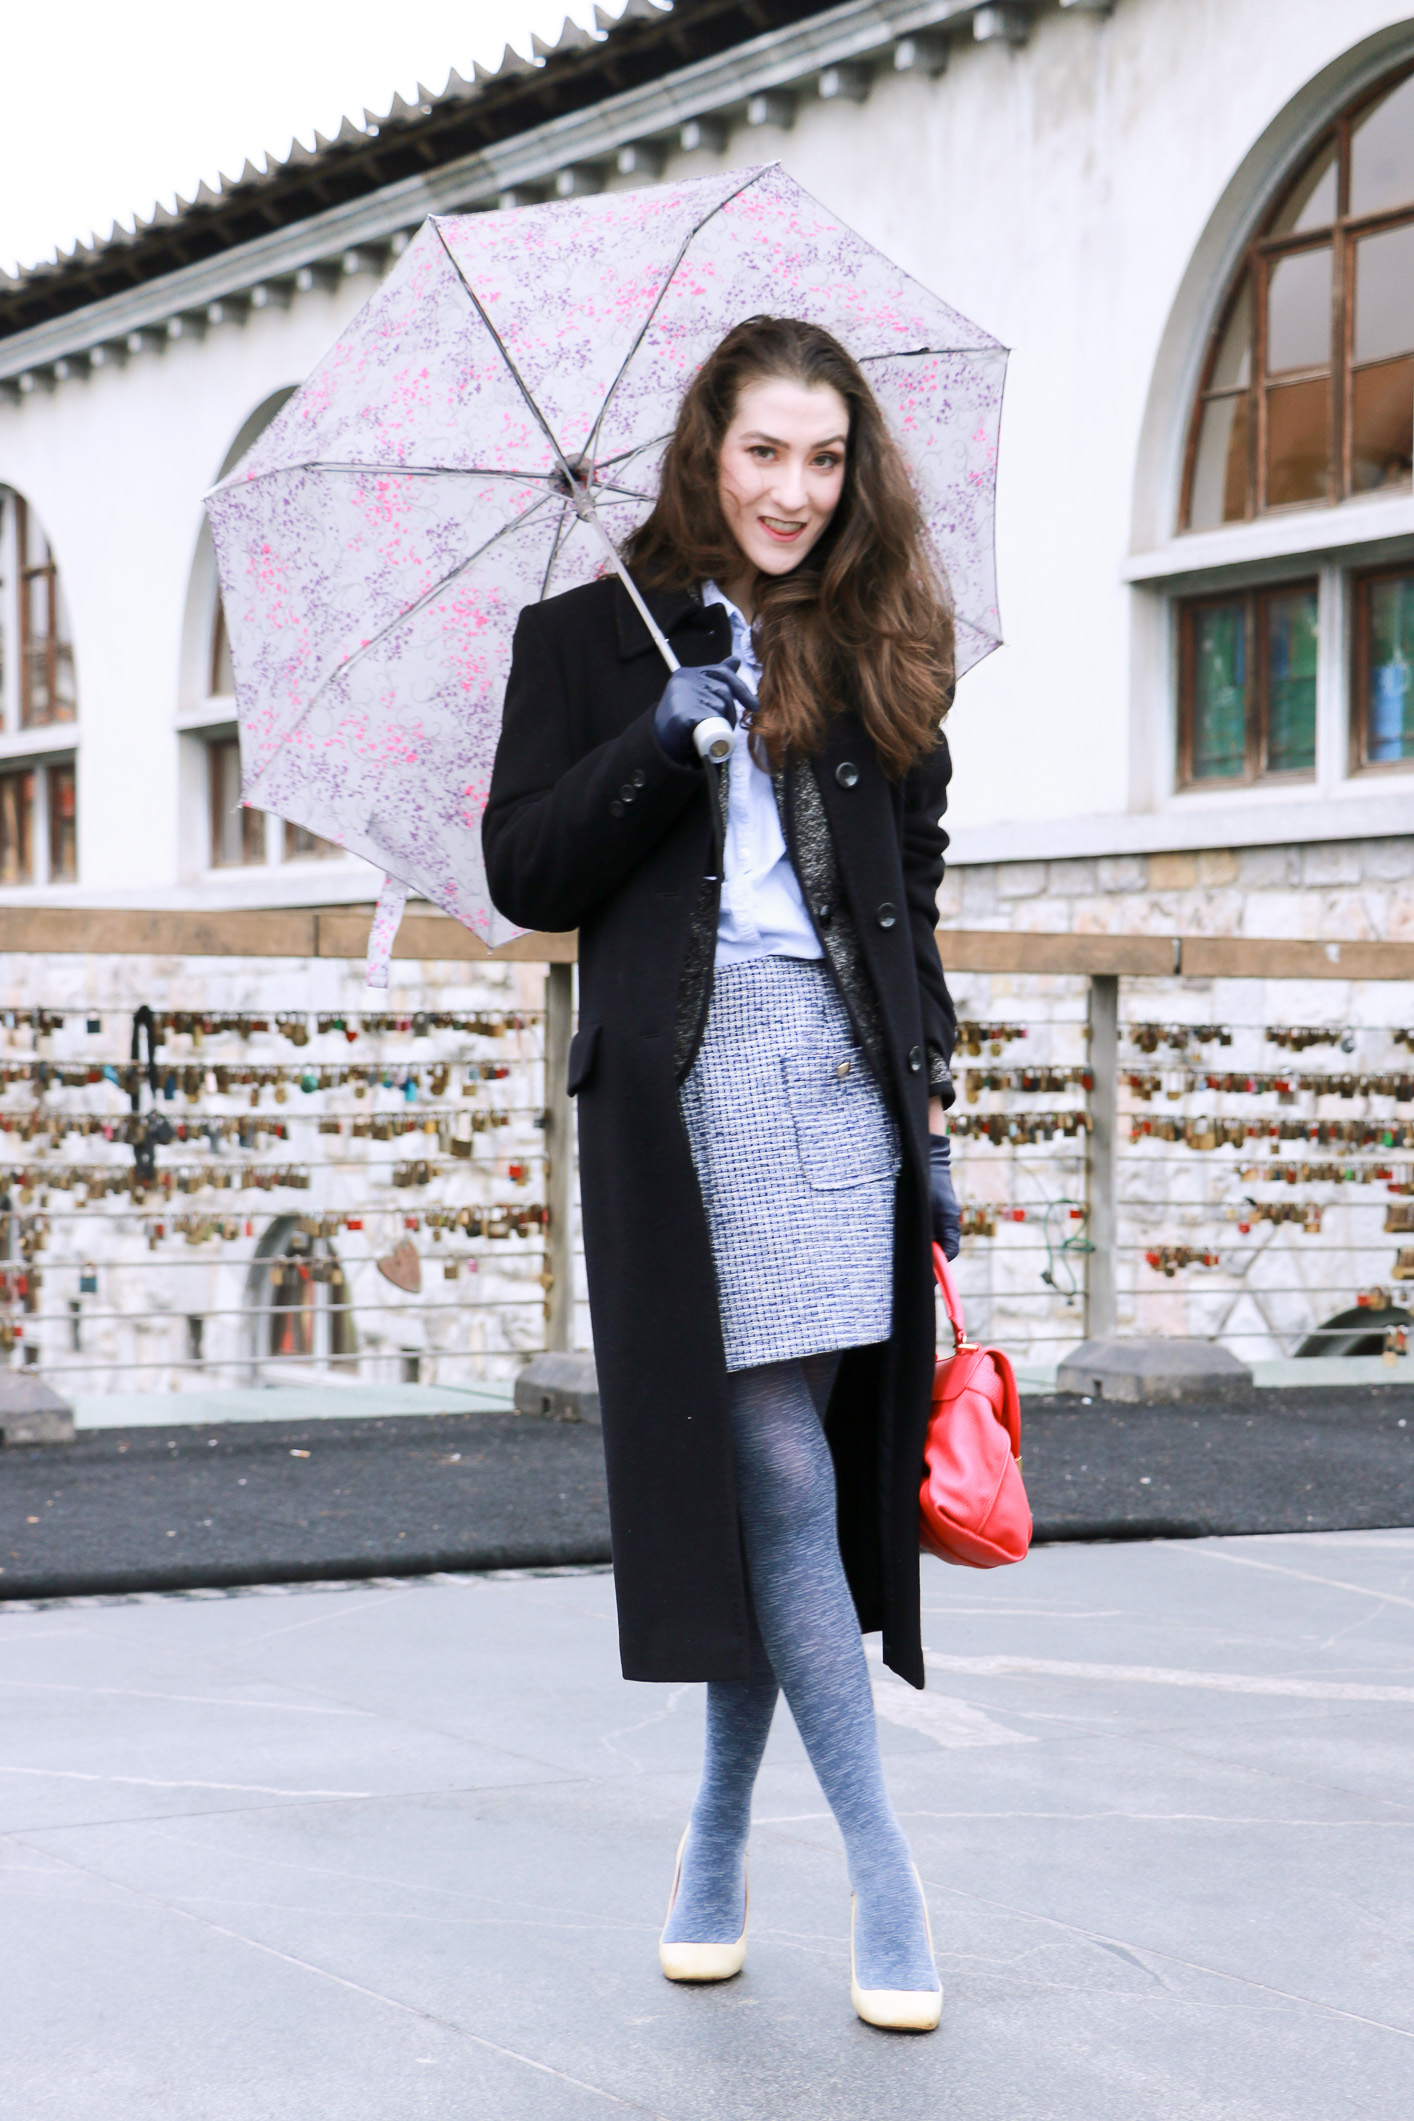 Fashion blogger Veronika Lipar of Brunette From Wall Street sharing what to wear to the Sunday brunch